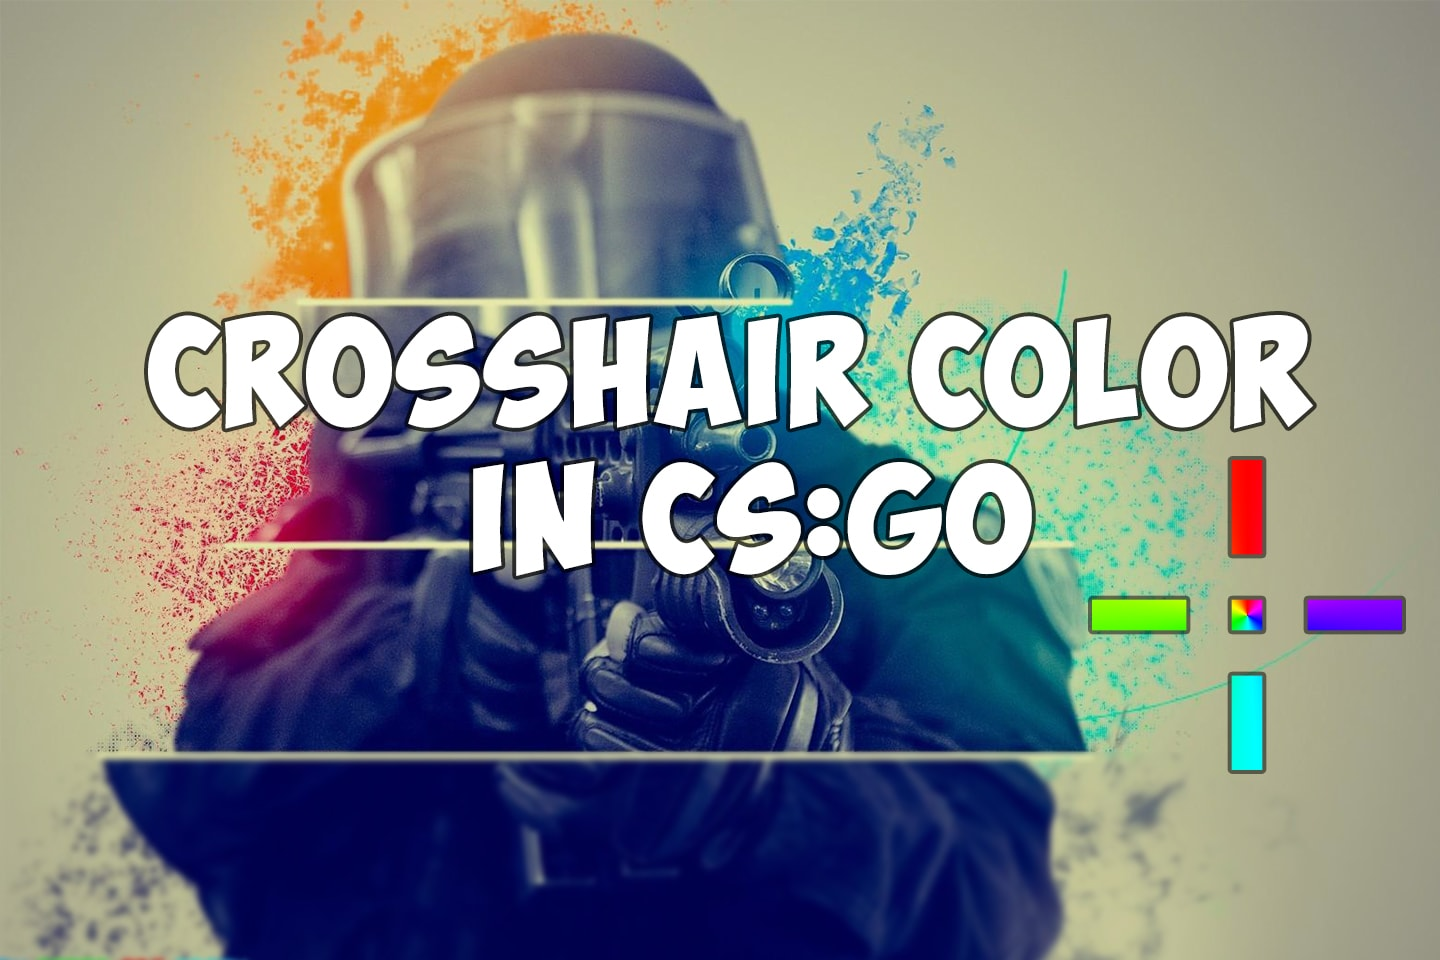 Custom color of your crosshair in CS:GO